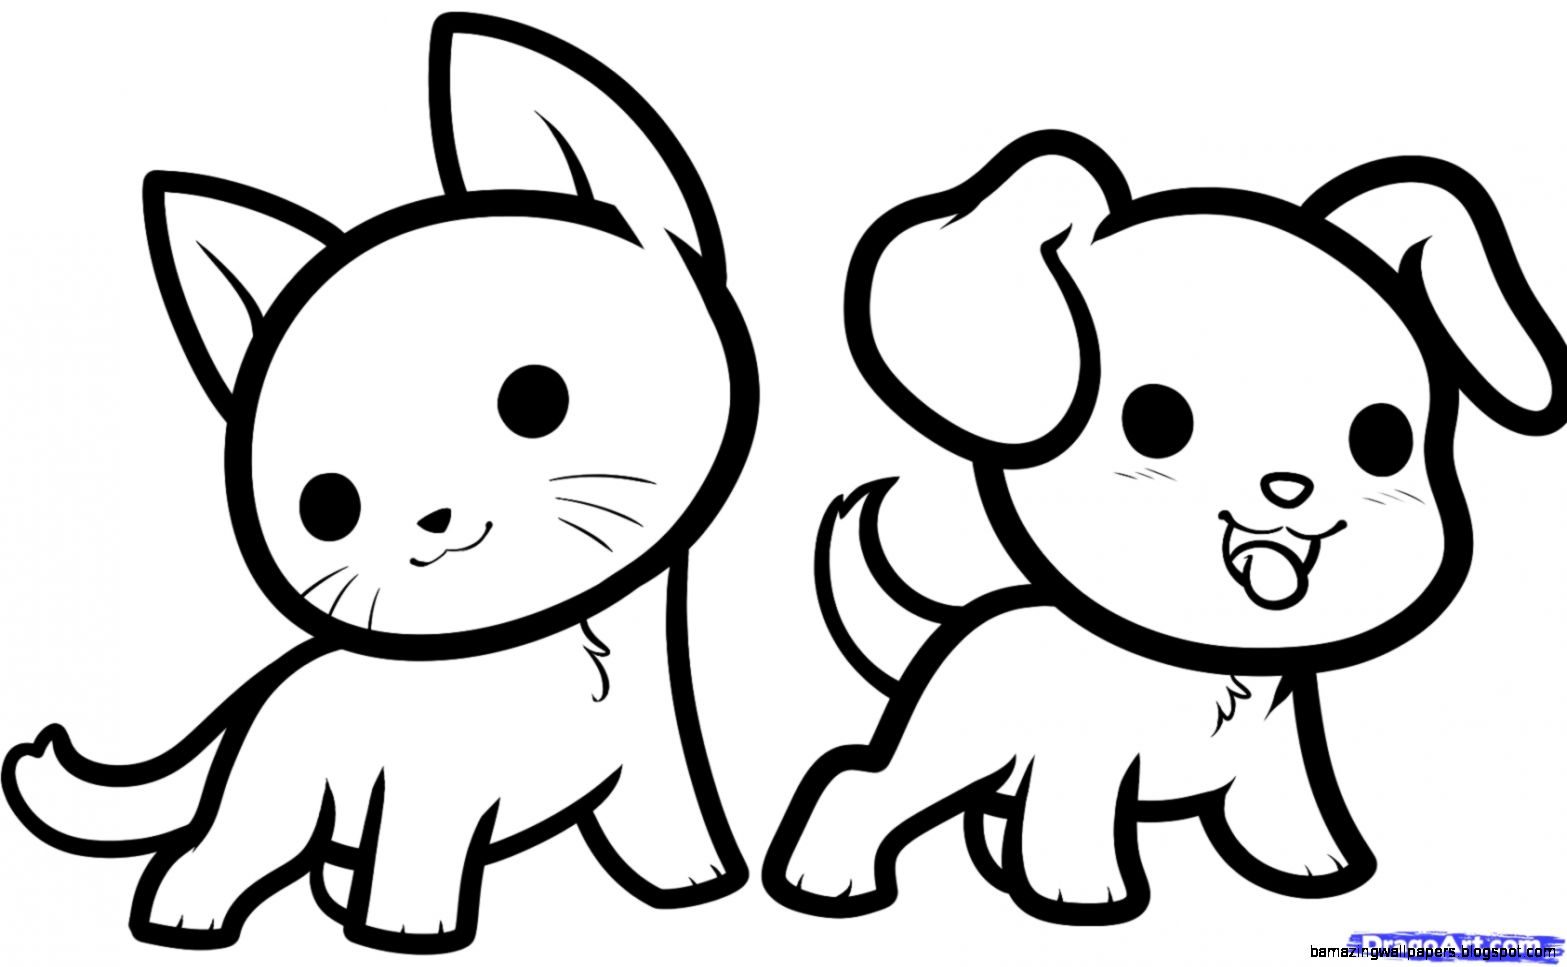 coloring pictures of cute animals cute animal coloring pages best coloring pages for kids animals pictures of cute coloring